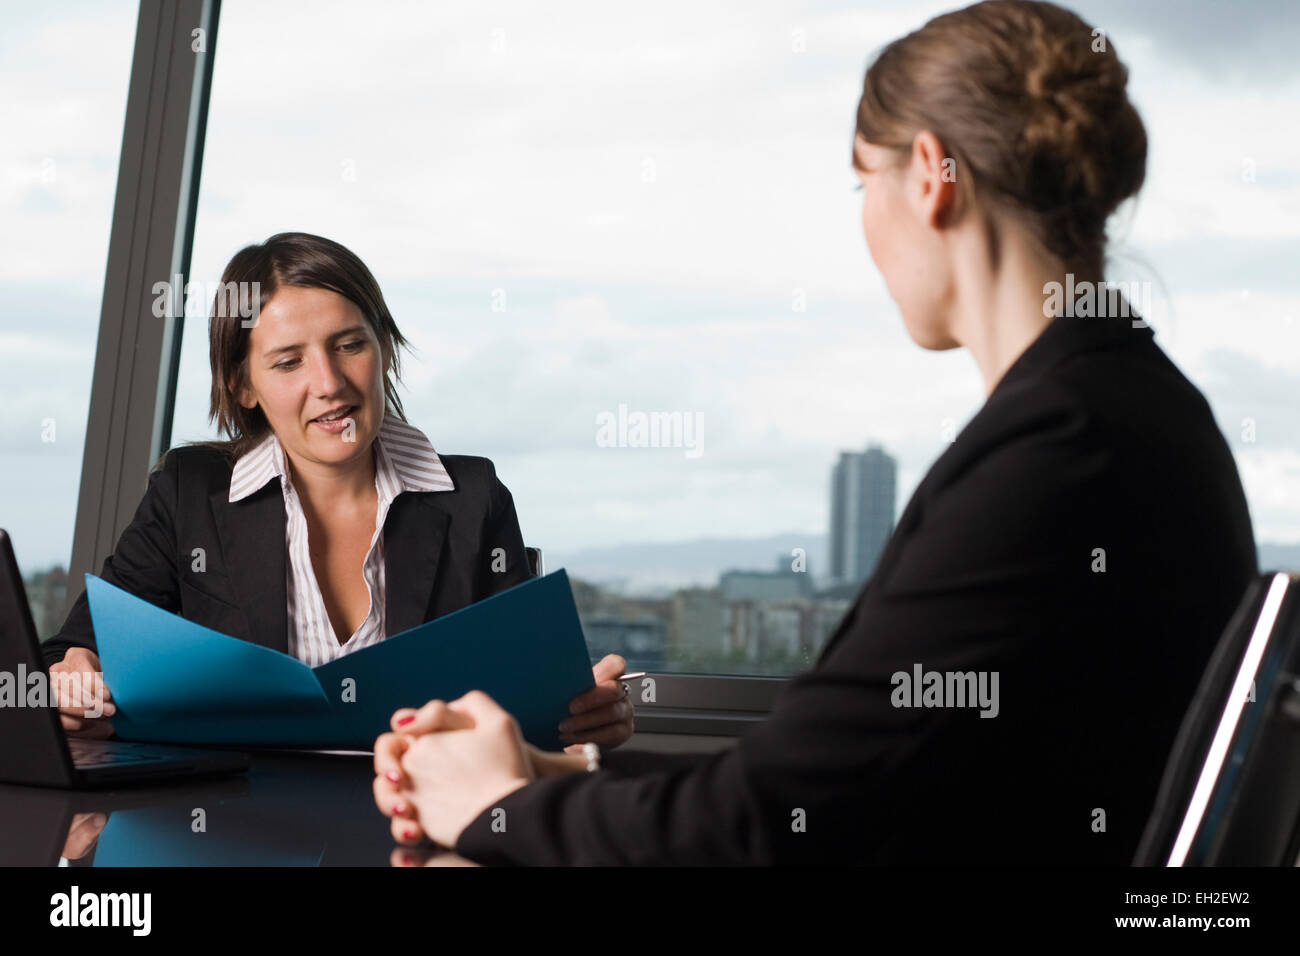 two persons sitting at a table in office during job interview stock photo two persons sitting at a table in office during job interview